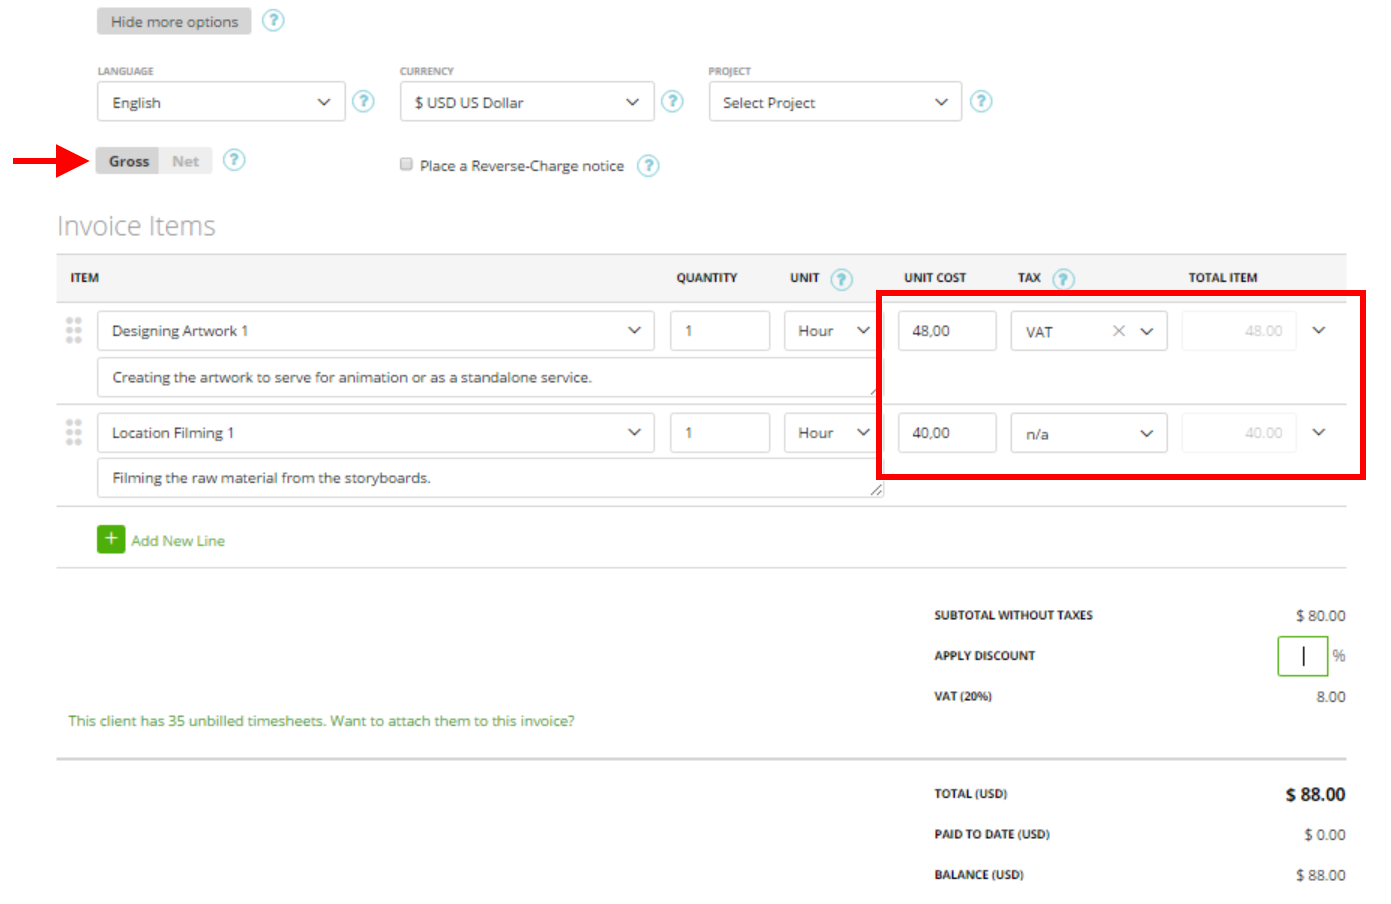 gross net prices on the invoice estimate moneypenny knowledge base